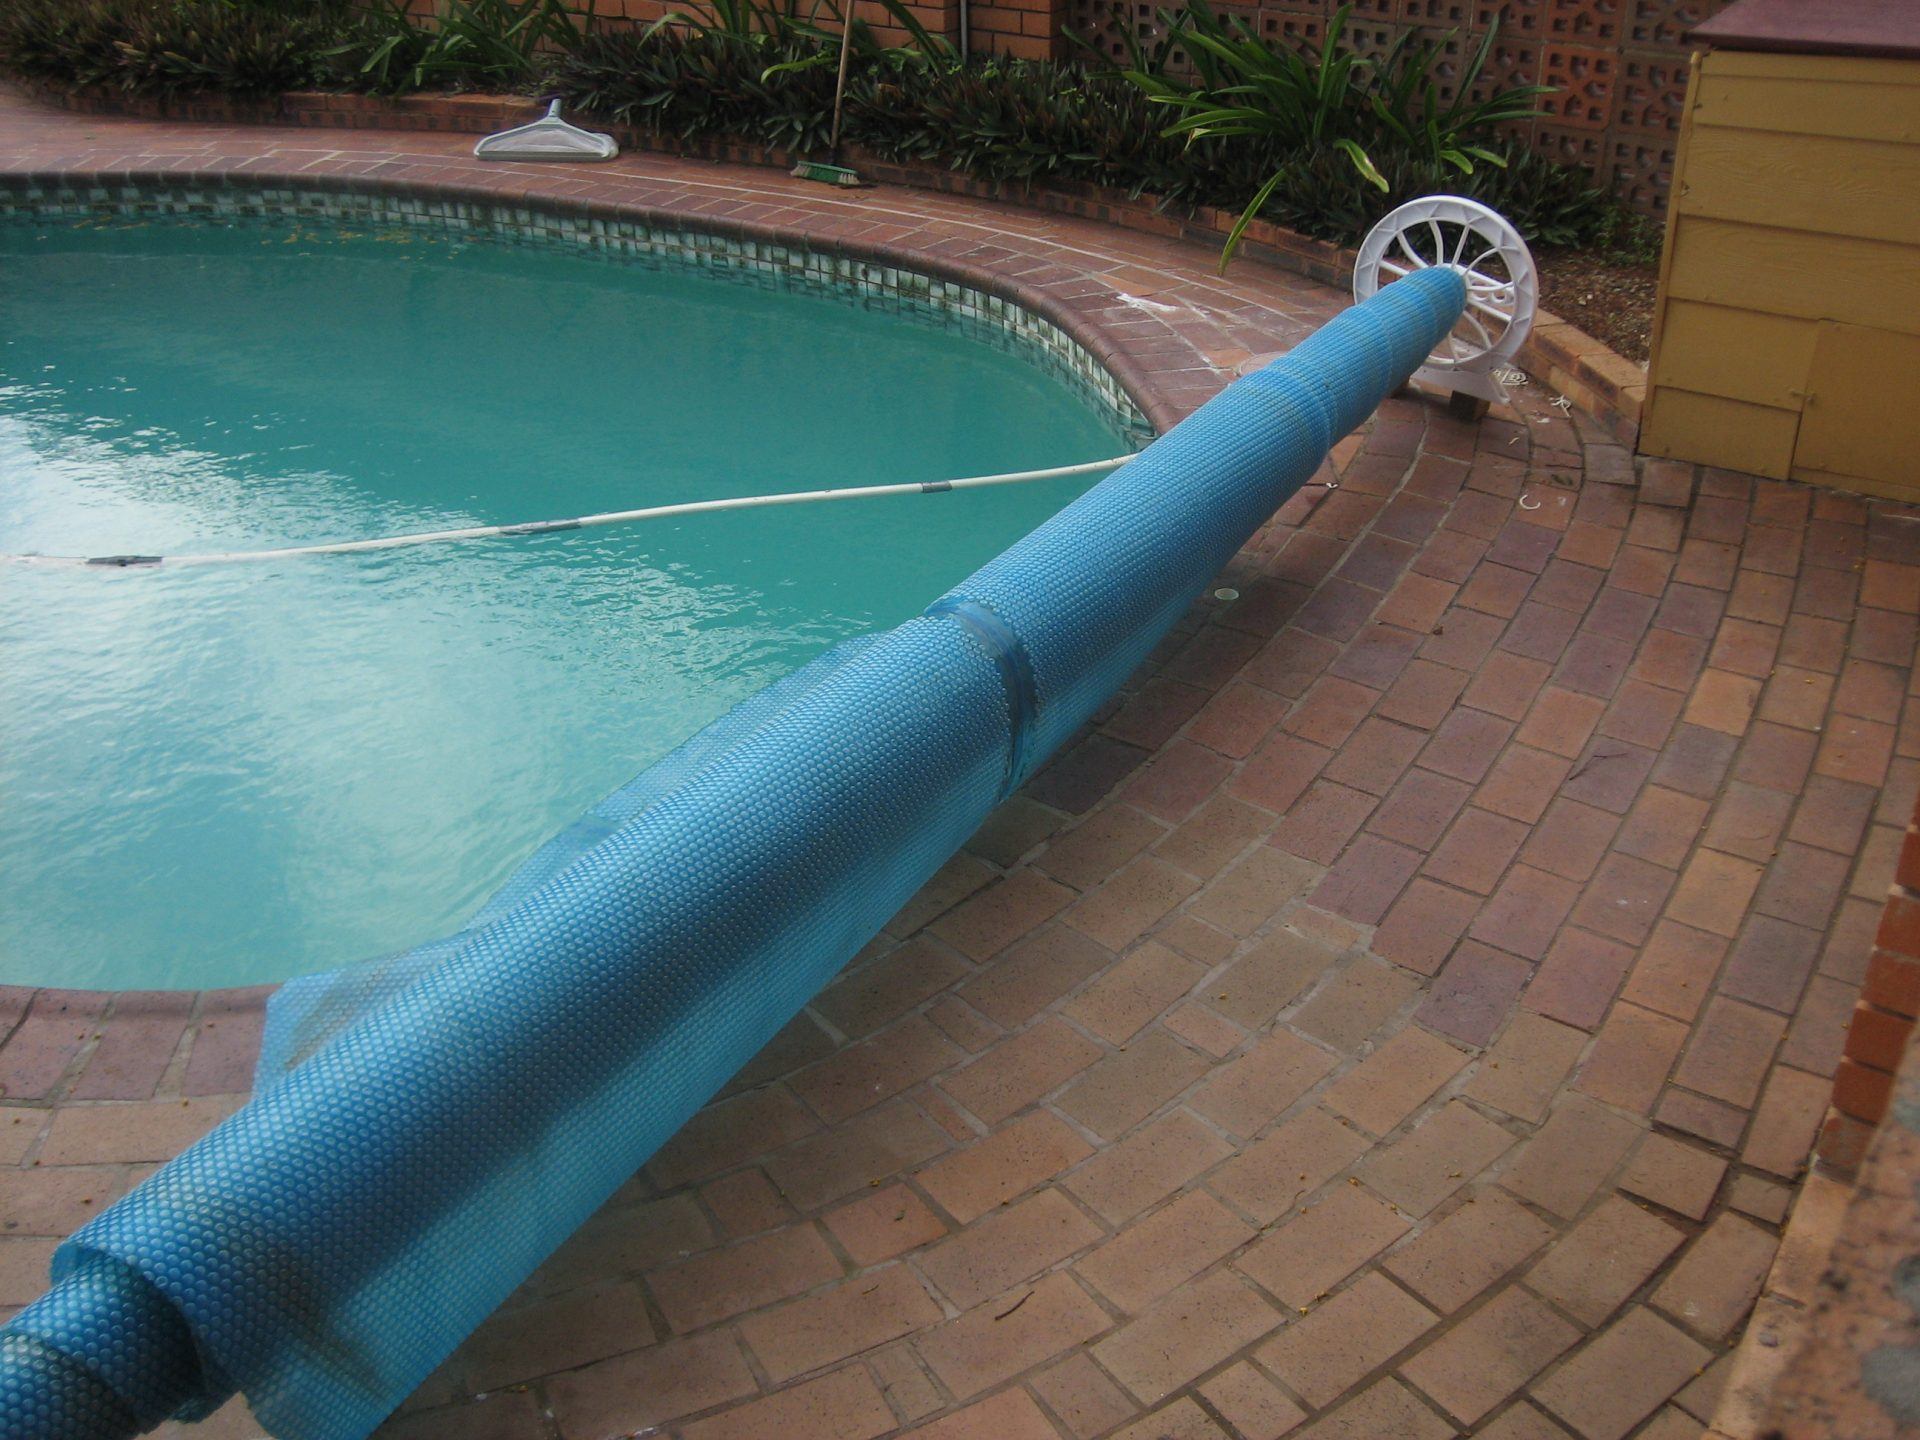 winterize pool, how to winterize a pool, how to winterize a swimming pool, how to close a pool, how to winterize an outdoor pool, how to close a pool for winter, pool closing chemicals, closing pool for winter, winterizing pool chemicals, how to close a pool for winter in ground, winterizing chemicals for pool closing, what chemicals do you put in pool for winter, closing inground pool for winter, how to winterize your pool, how do you winterize a pool, what do you do to winterize a pool, winterizing above ground pool, how to winterize an above ground pool, how to close an above ground pool, how to close a pool for winter above ground, closing above ground pool, above ground pool winterizing kit, closing above ground pool for winter, winterizing above ground pool without draining water, how to cover an above ground pool, how to winterize above ground swimming pool, above ground pool care for winter, best way to winterize above ground pool, draining above ground pool, how to winterize above ground pool skimmer, winterizing chemicals above ground pool, how to cover pool for winter, closing down an above ground pool, how do you winterize a above ground pool, how to close an inground pool, how to winterize an inground pool, winterize inground pool, closing inground pool, how far to drain inground pool for winter, closed swimming pool, closing a pool for the season, pool closing kit, how to close a swimming pool, how to close your swimming pool for winter, chemicals to close in ground pool, how to cover inground pool for winter, closing down a pool, instructions for closing inground pool, closing a swimming pool for the season